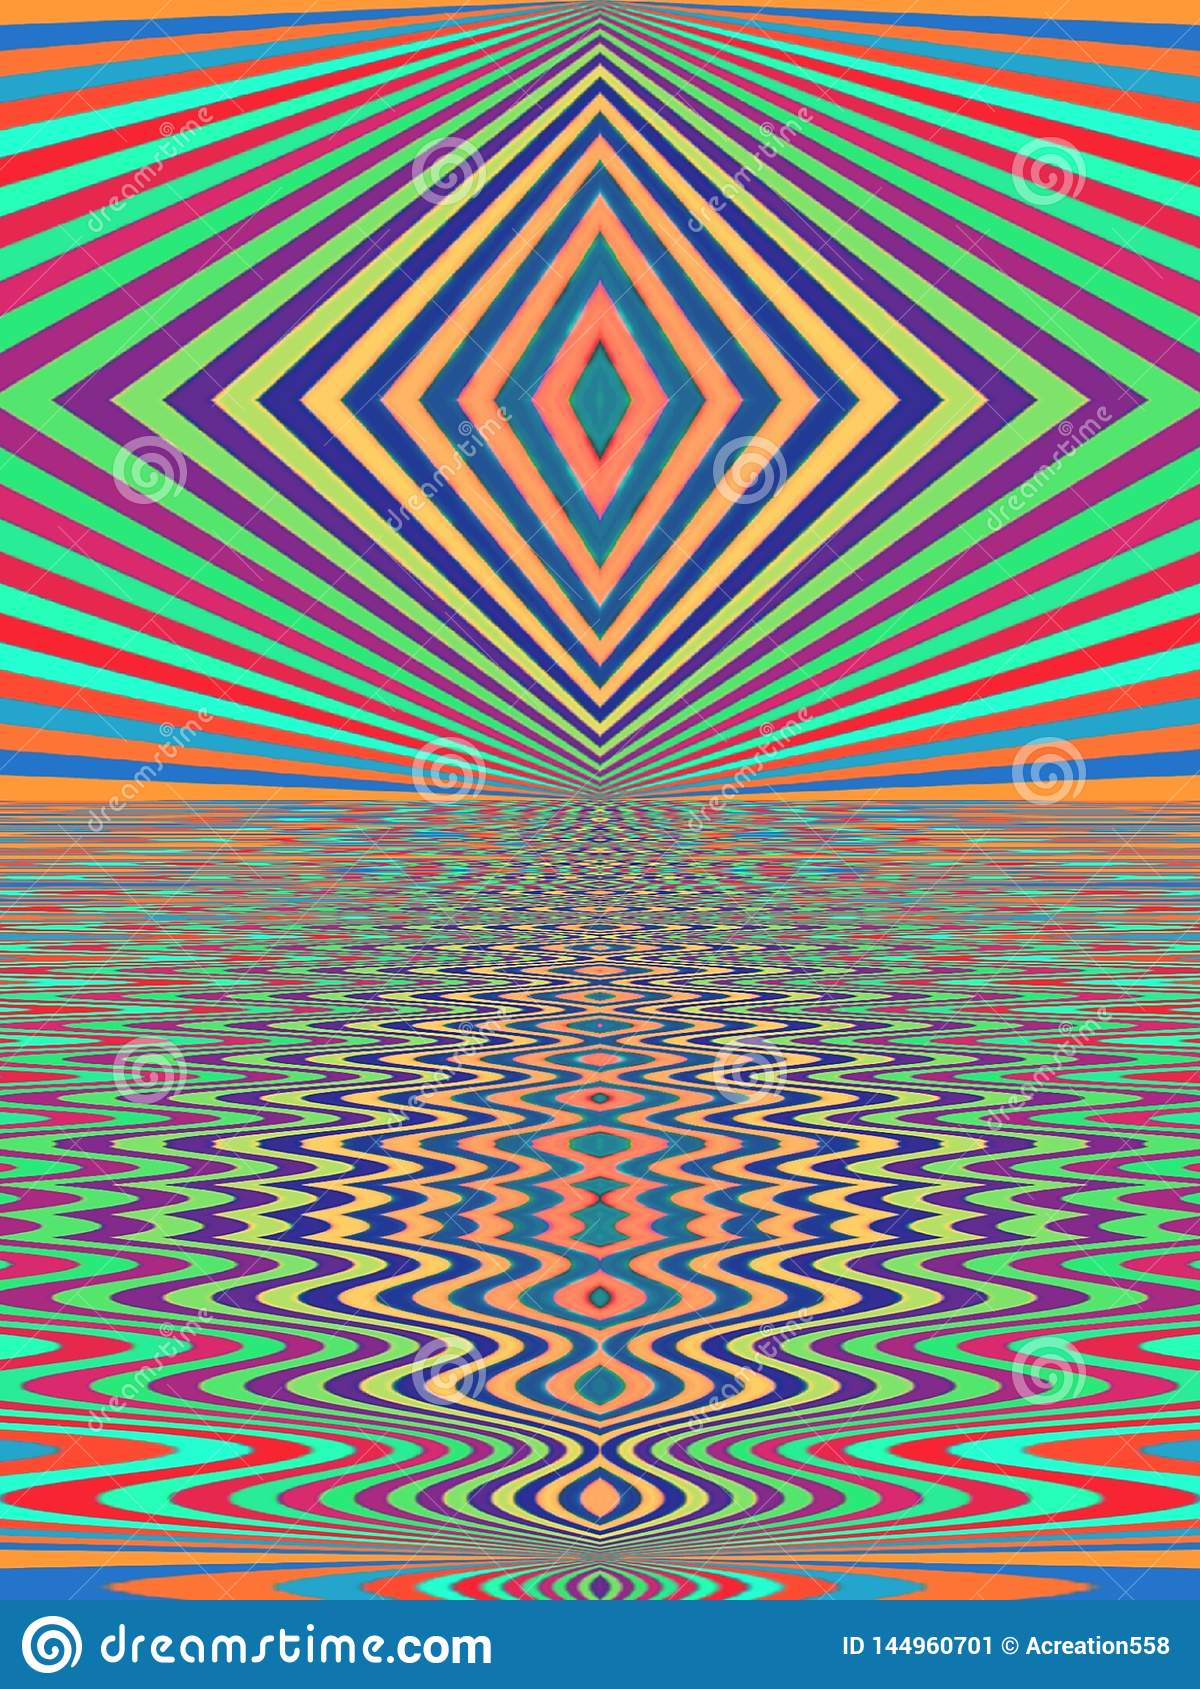 trippy wallpaper psychedelic colorful digital